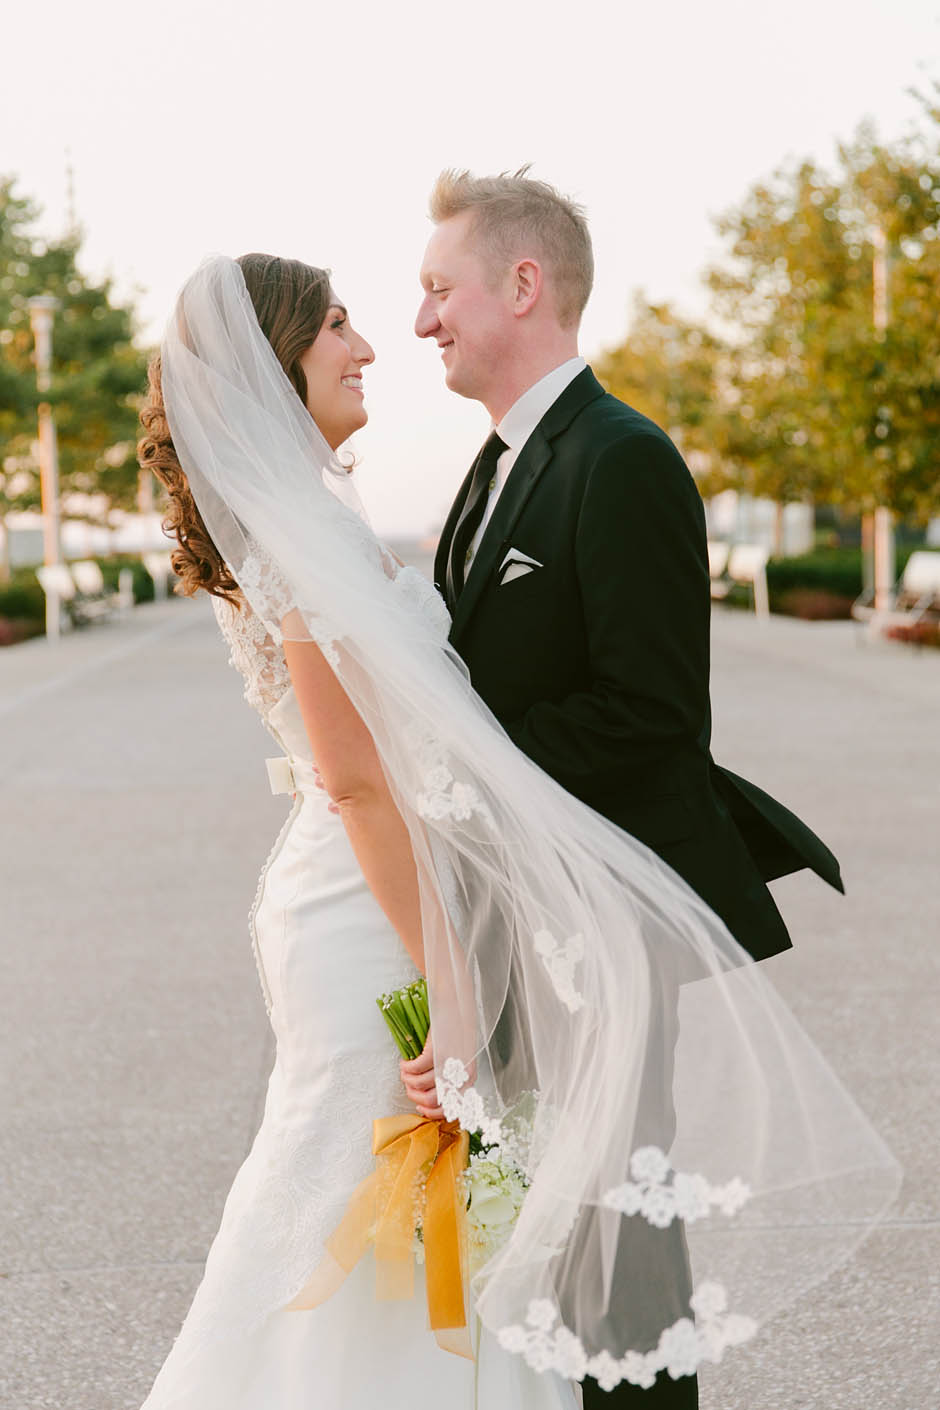 A fall wedding at The Galleria with Suzie and Jack.